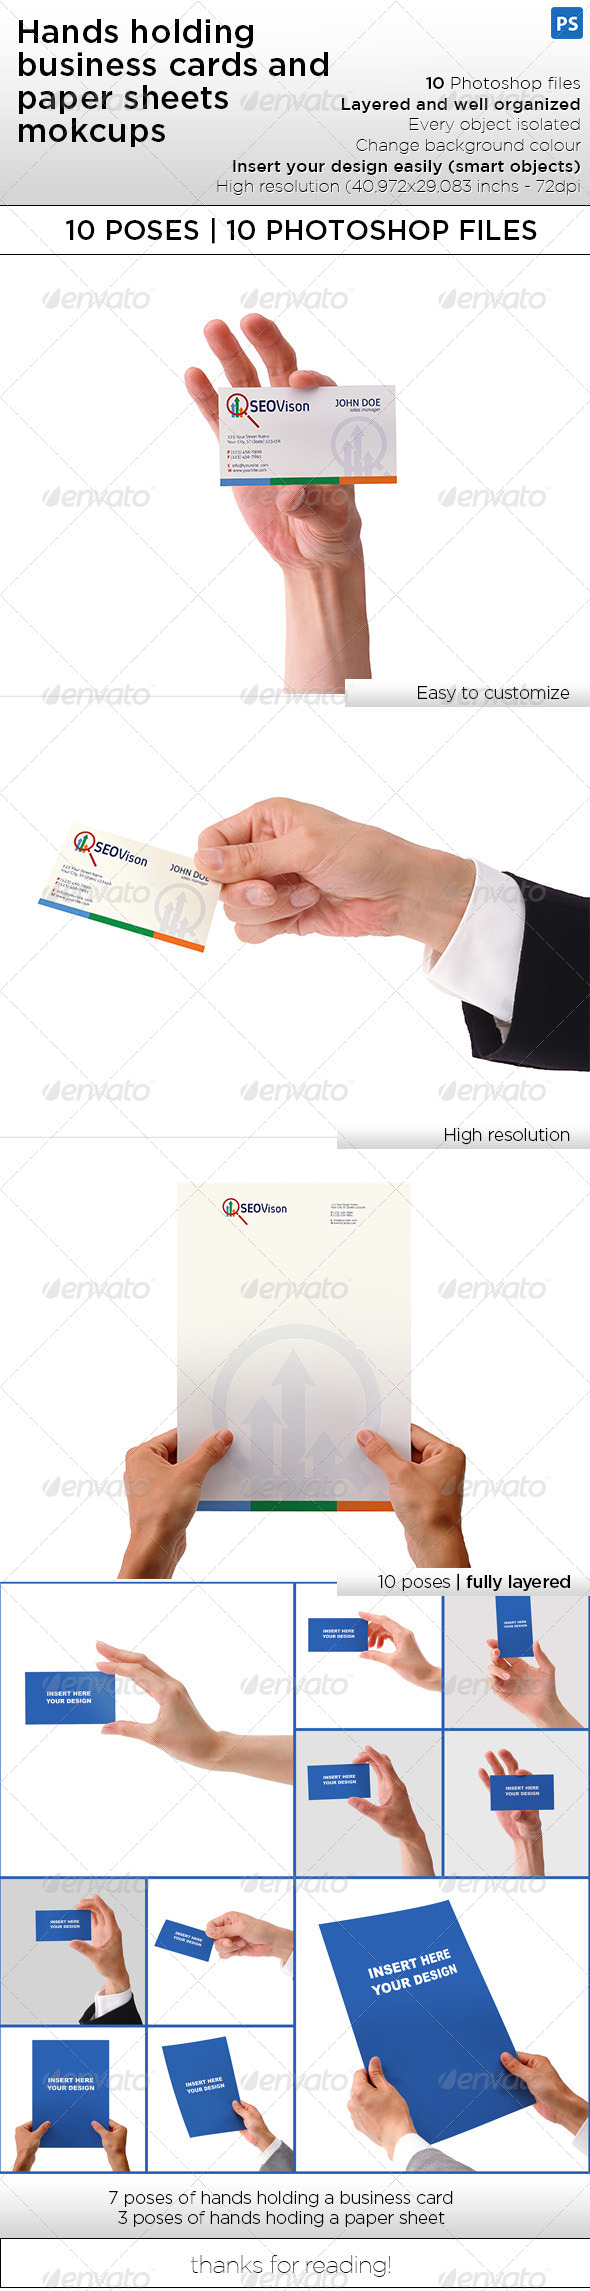 GraphicRiver Hand Holding Business Card and Paper Sheet Mockups 8067919